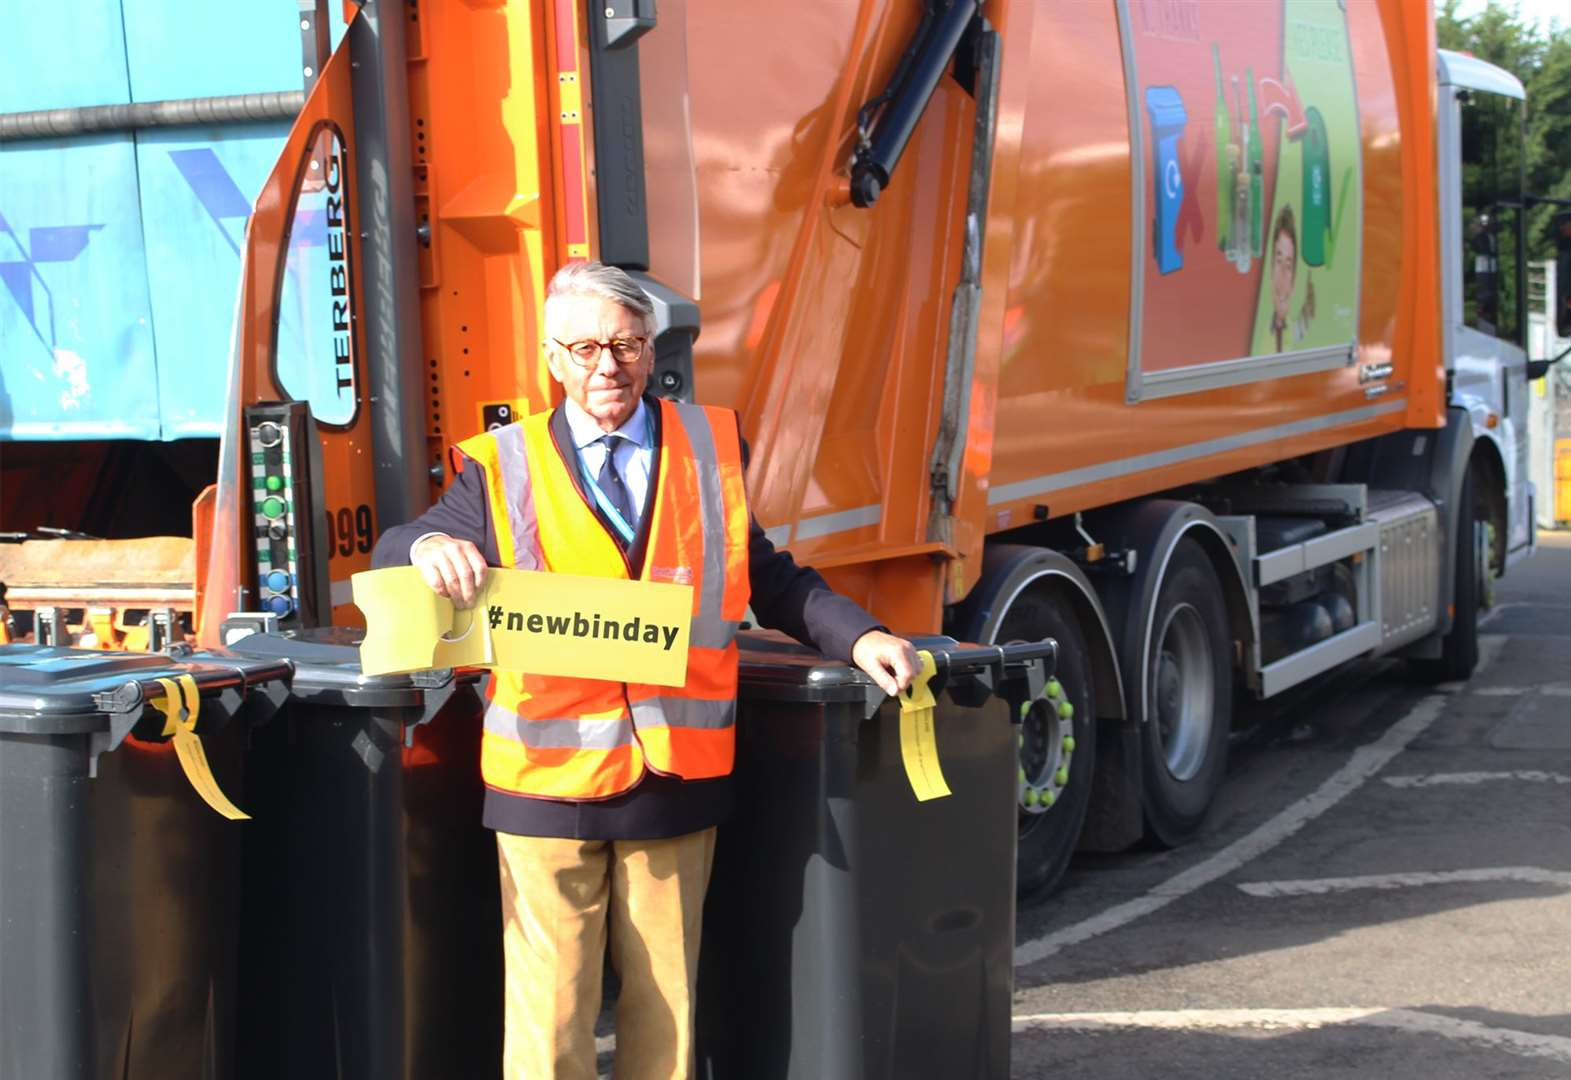 West Suffolk residents to receive letter next week detailing changes to bin collections